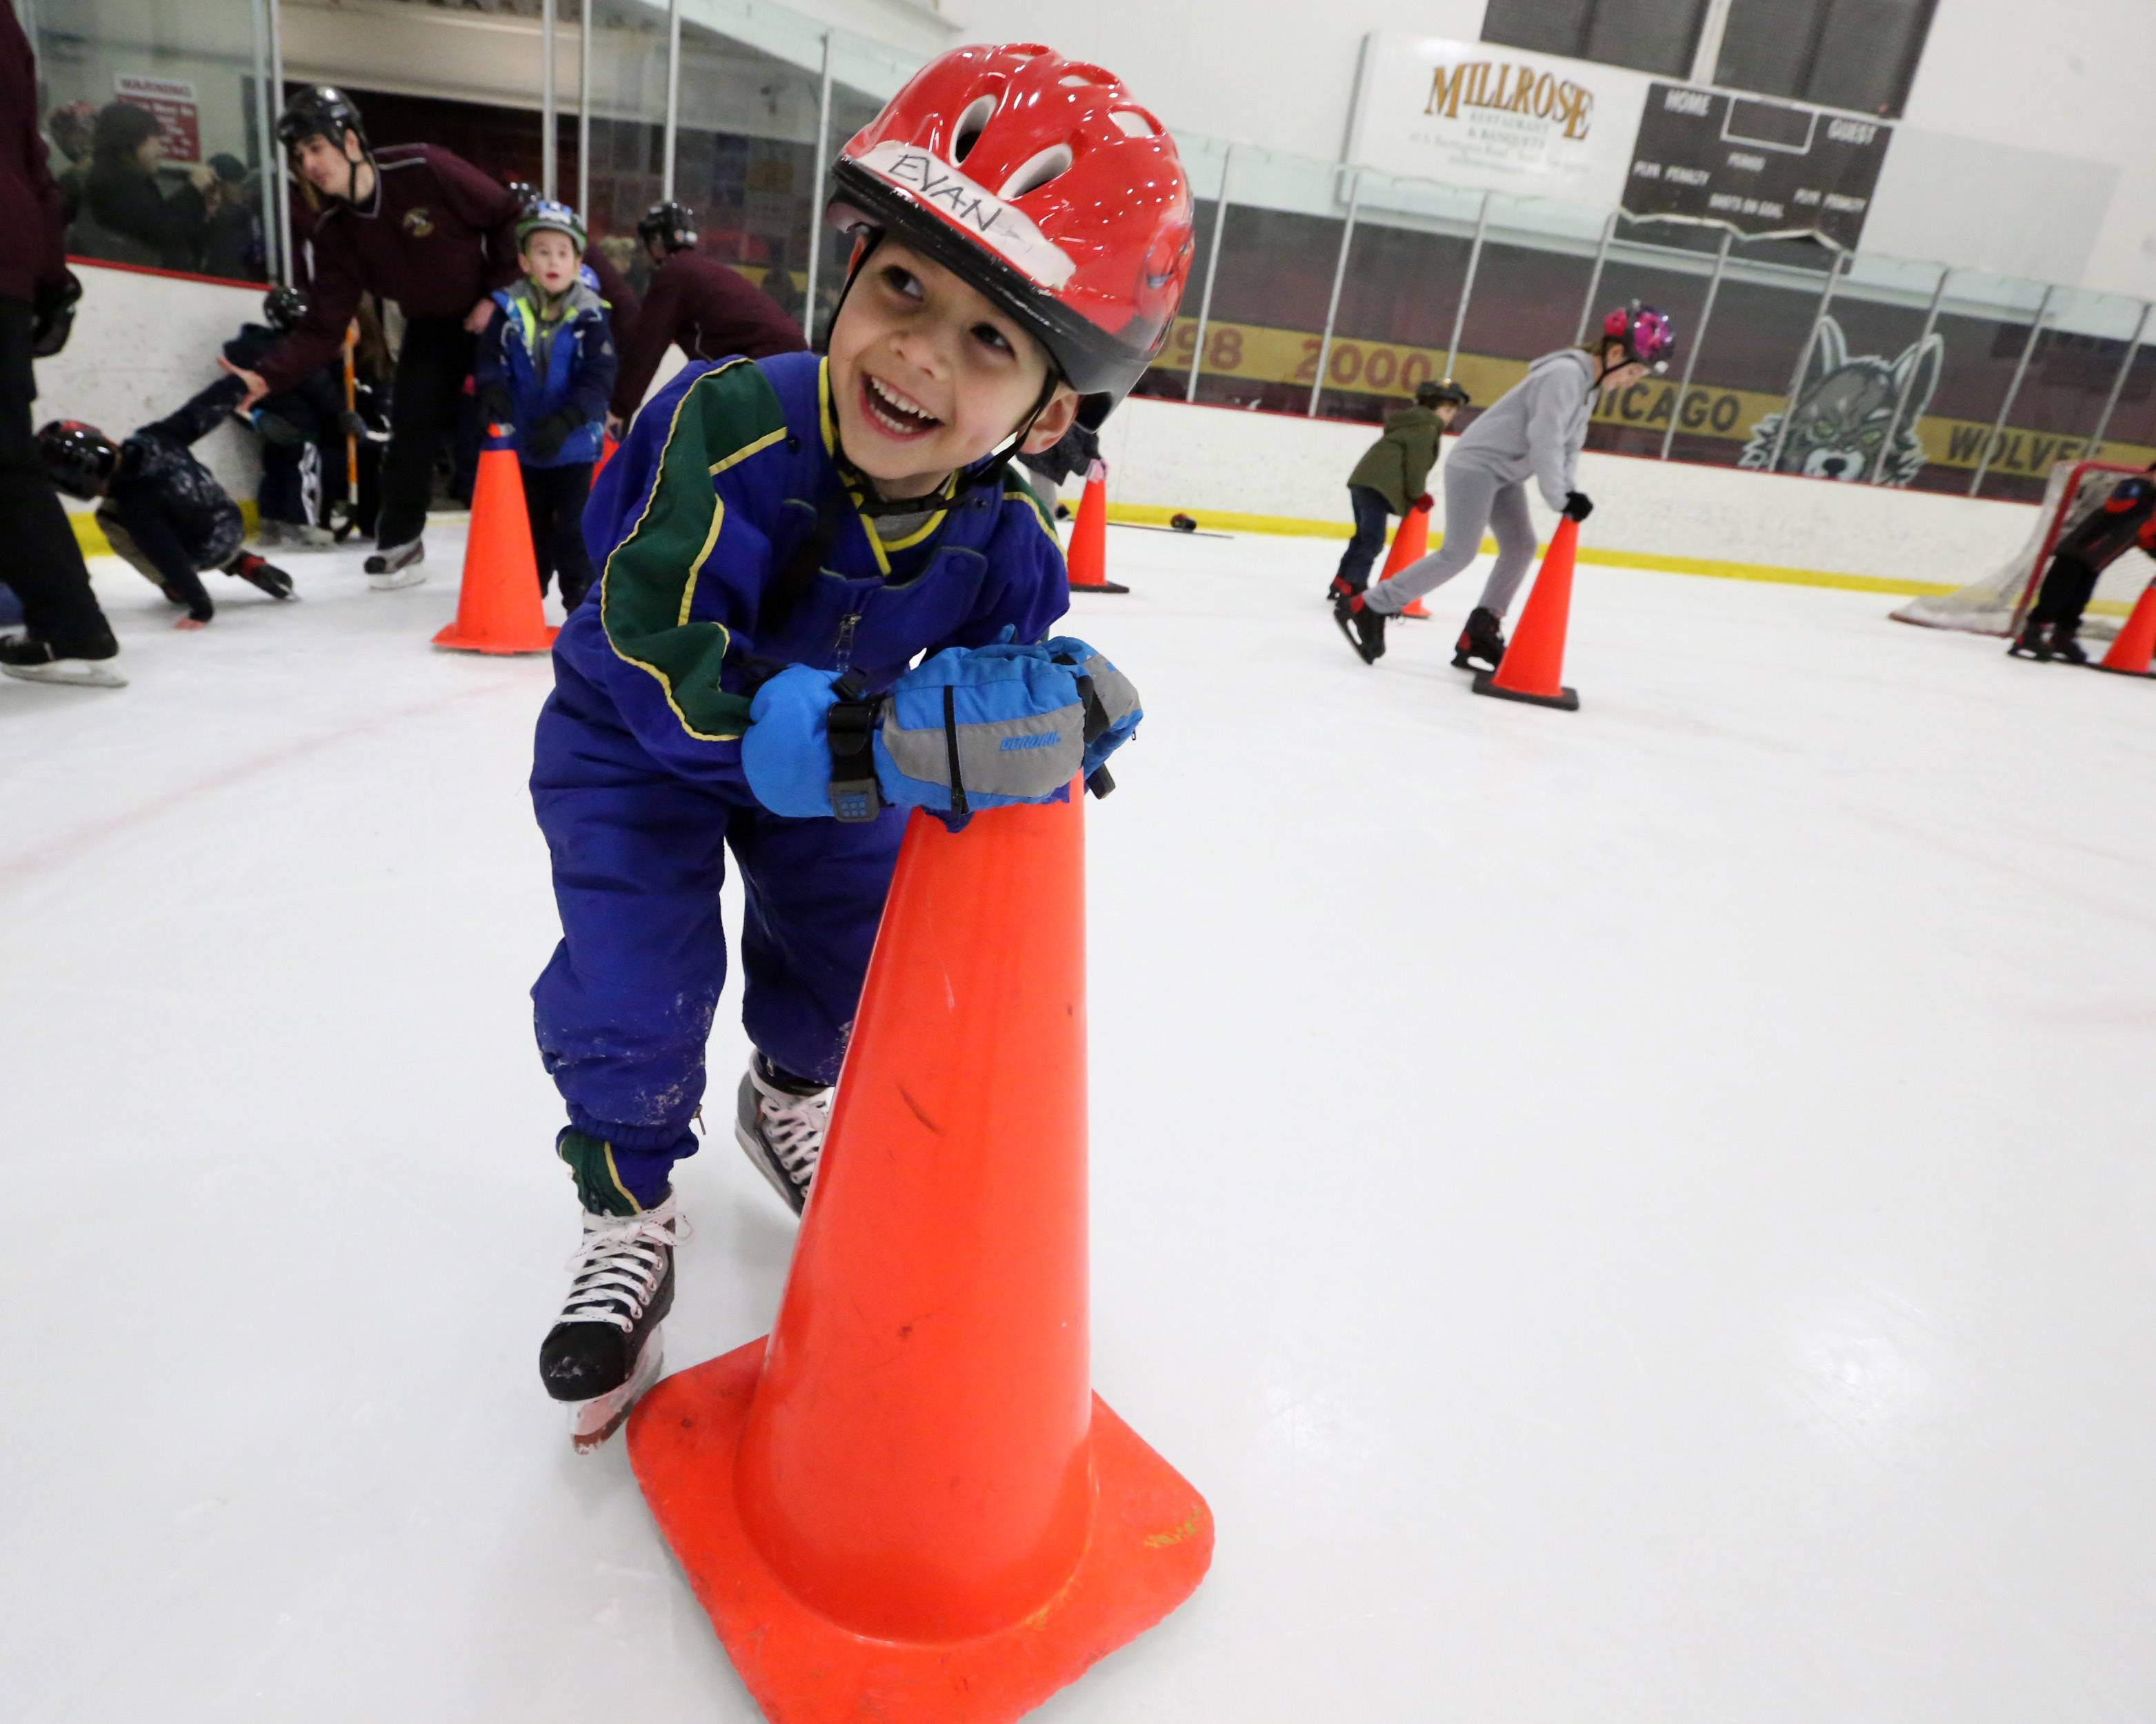 Evan Sher, 5, of Hanover Park learns to stay up on his skates using an orange traffic cone at USA Hockey's annual Try Hockey For Free event at the Triphahn Center on Saturday in Hoffman Estates.